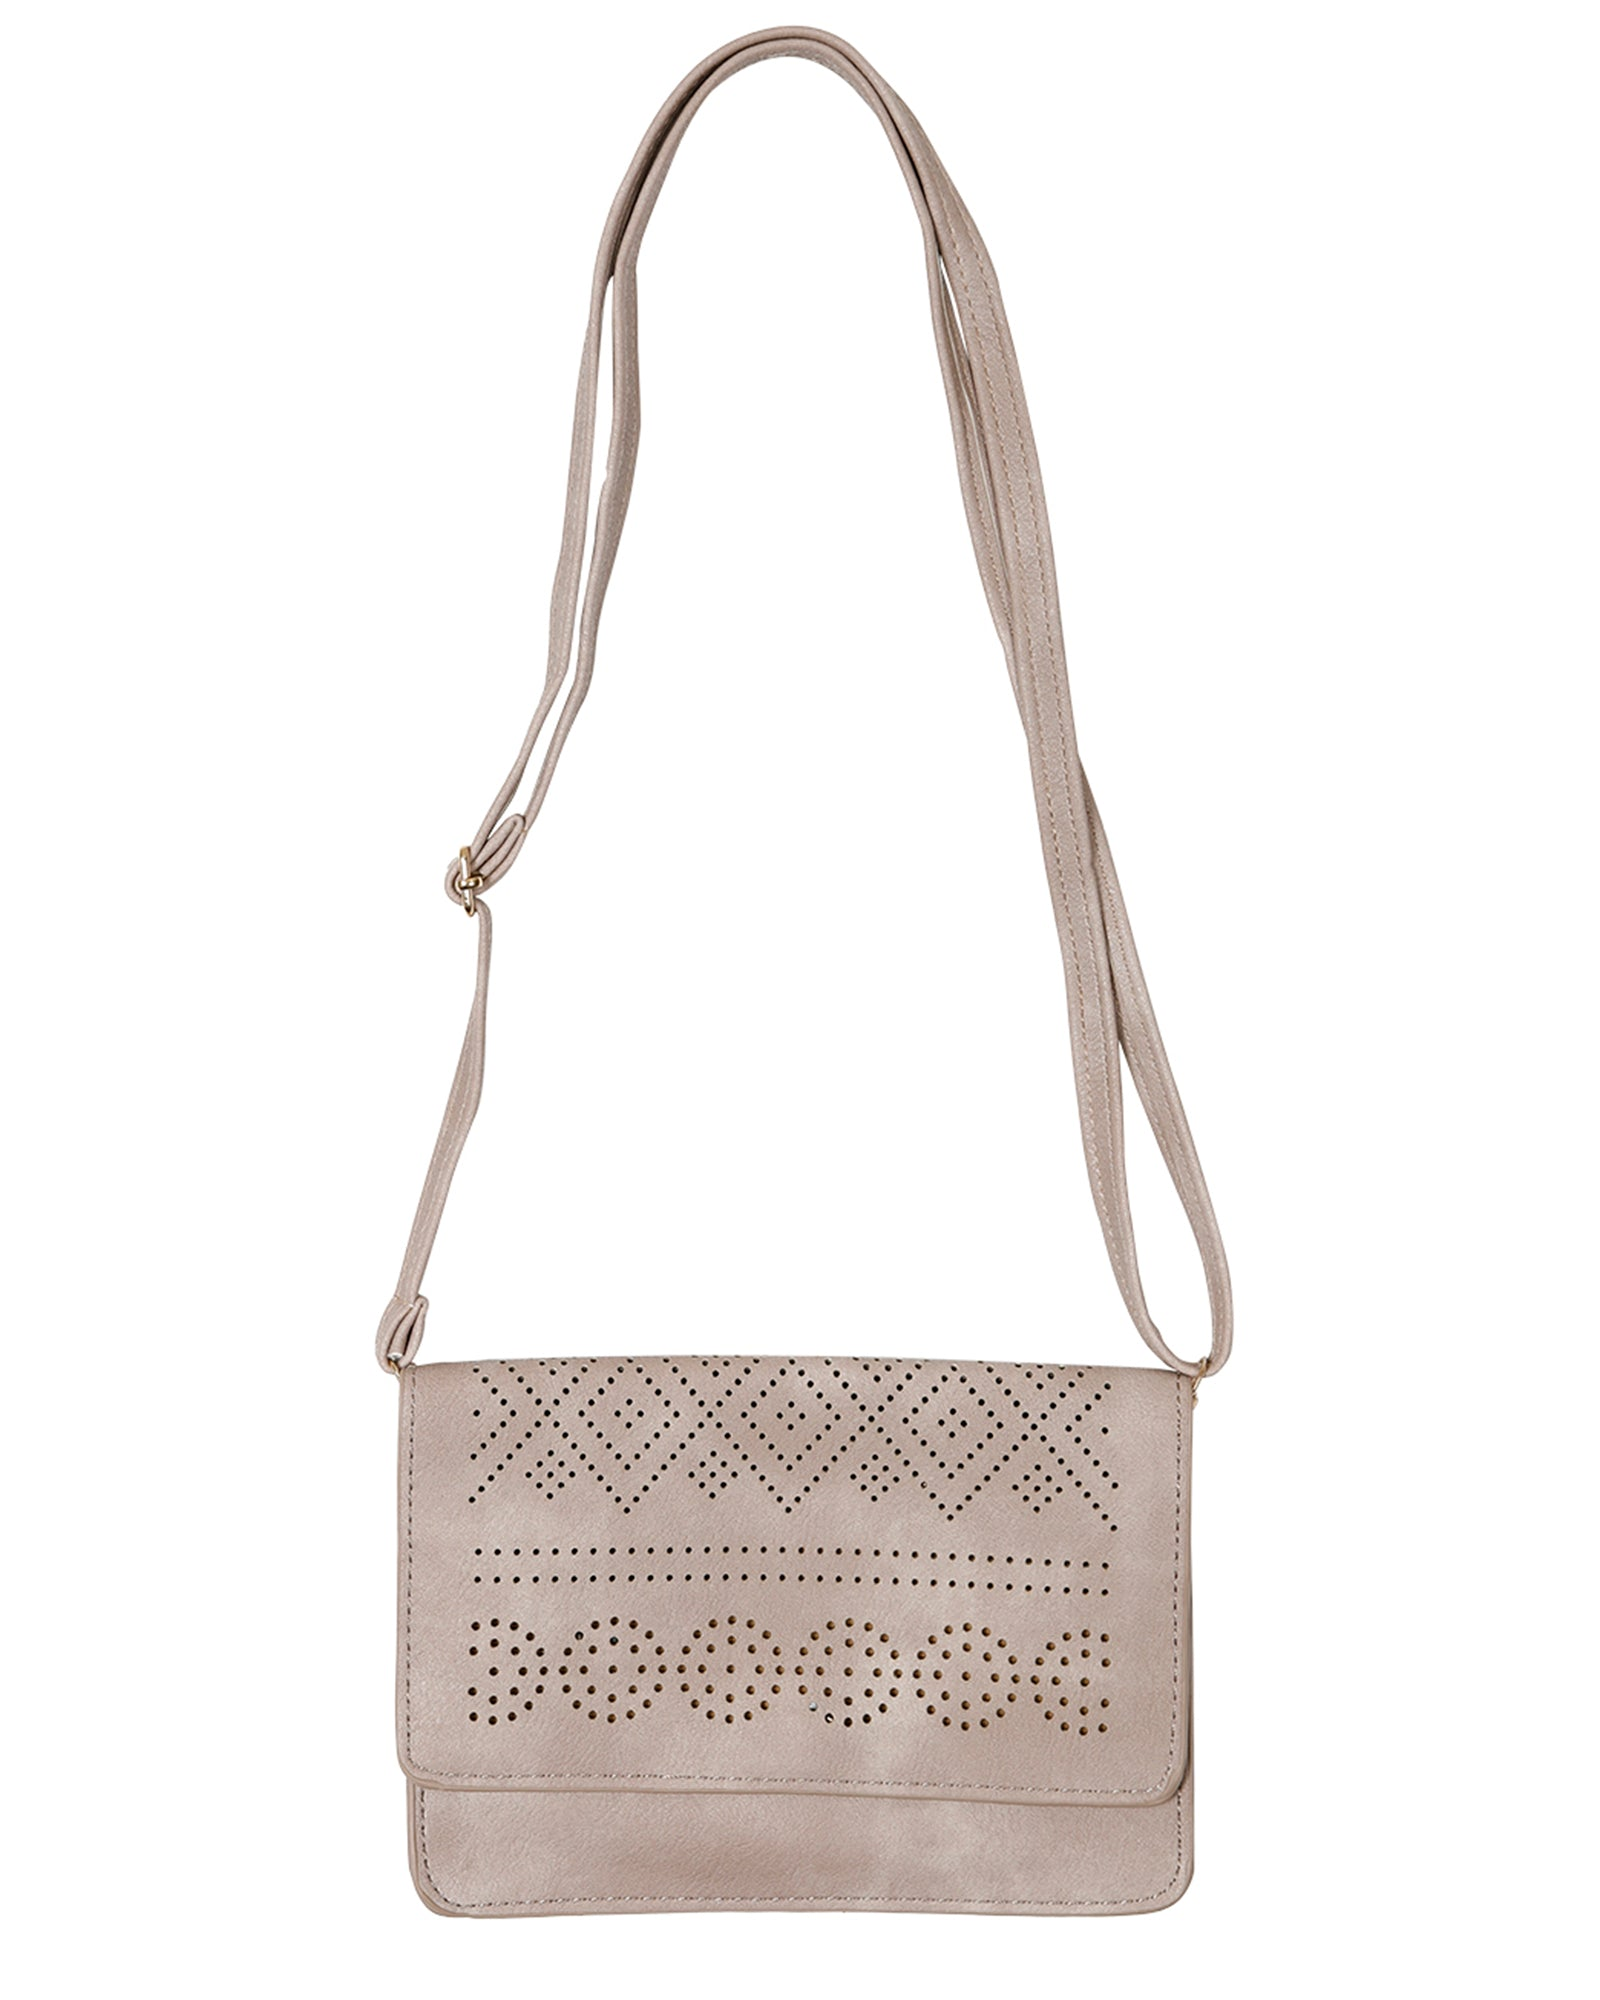 Clutch /Shoulder Bag - Stone